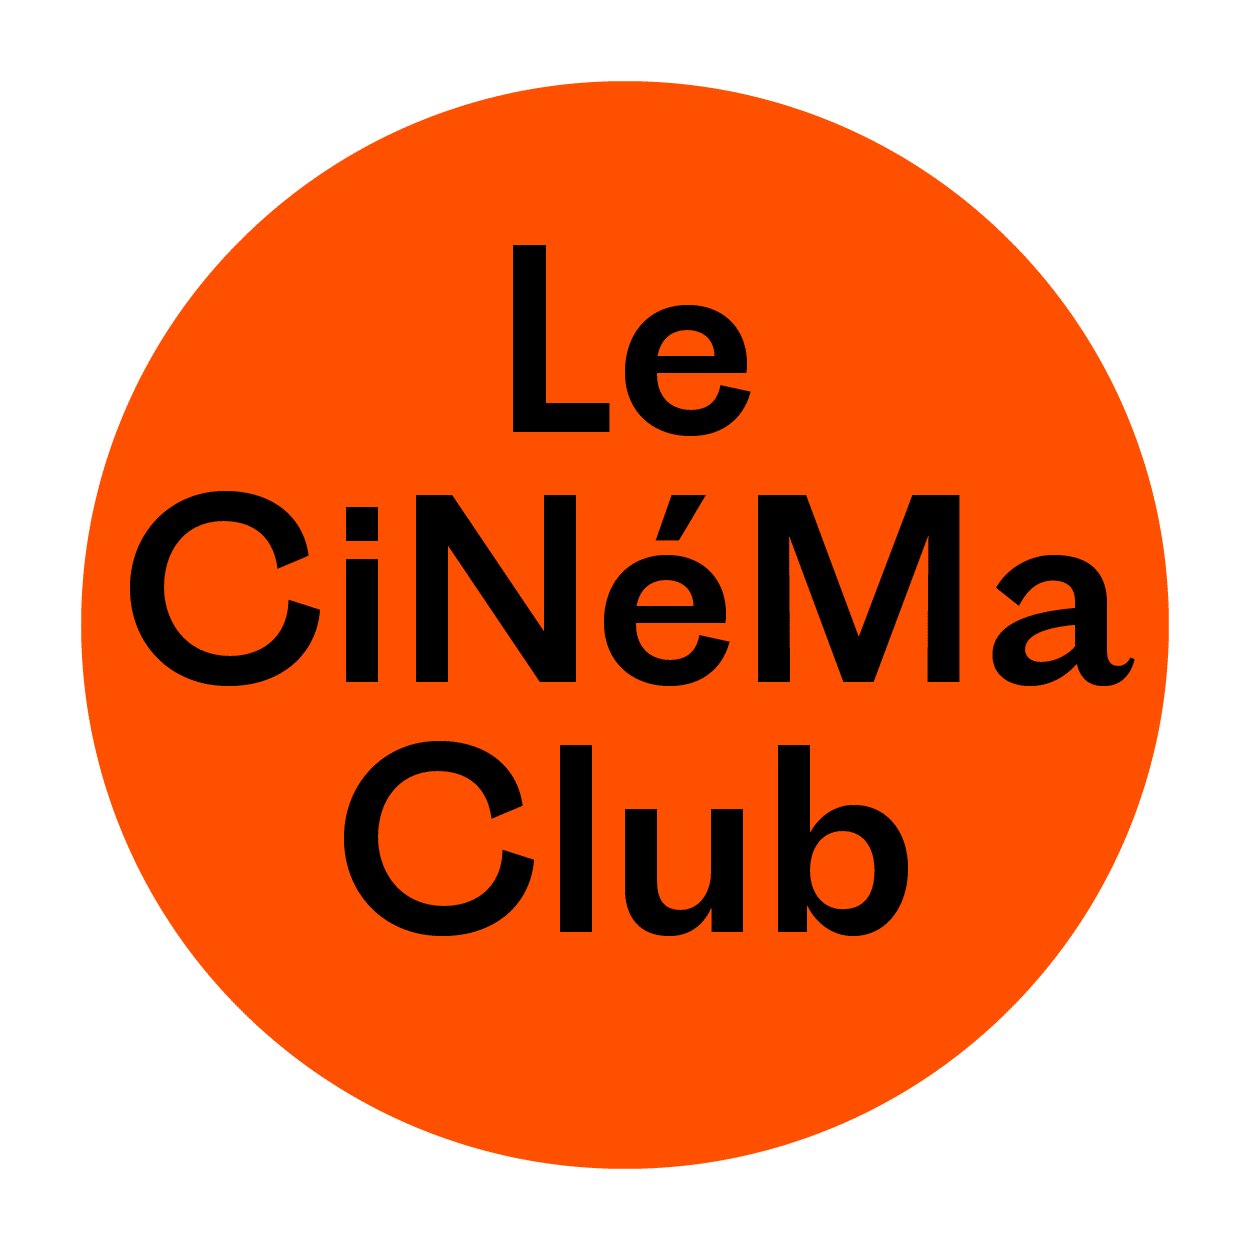 Le cinema club